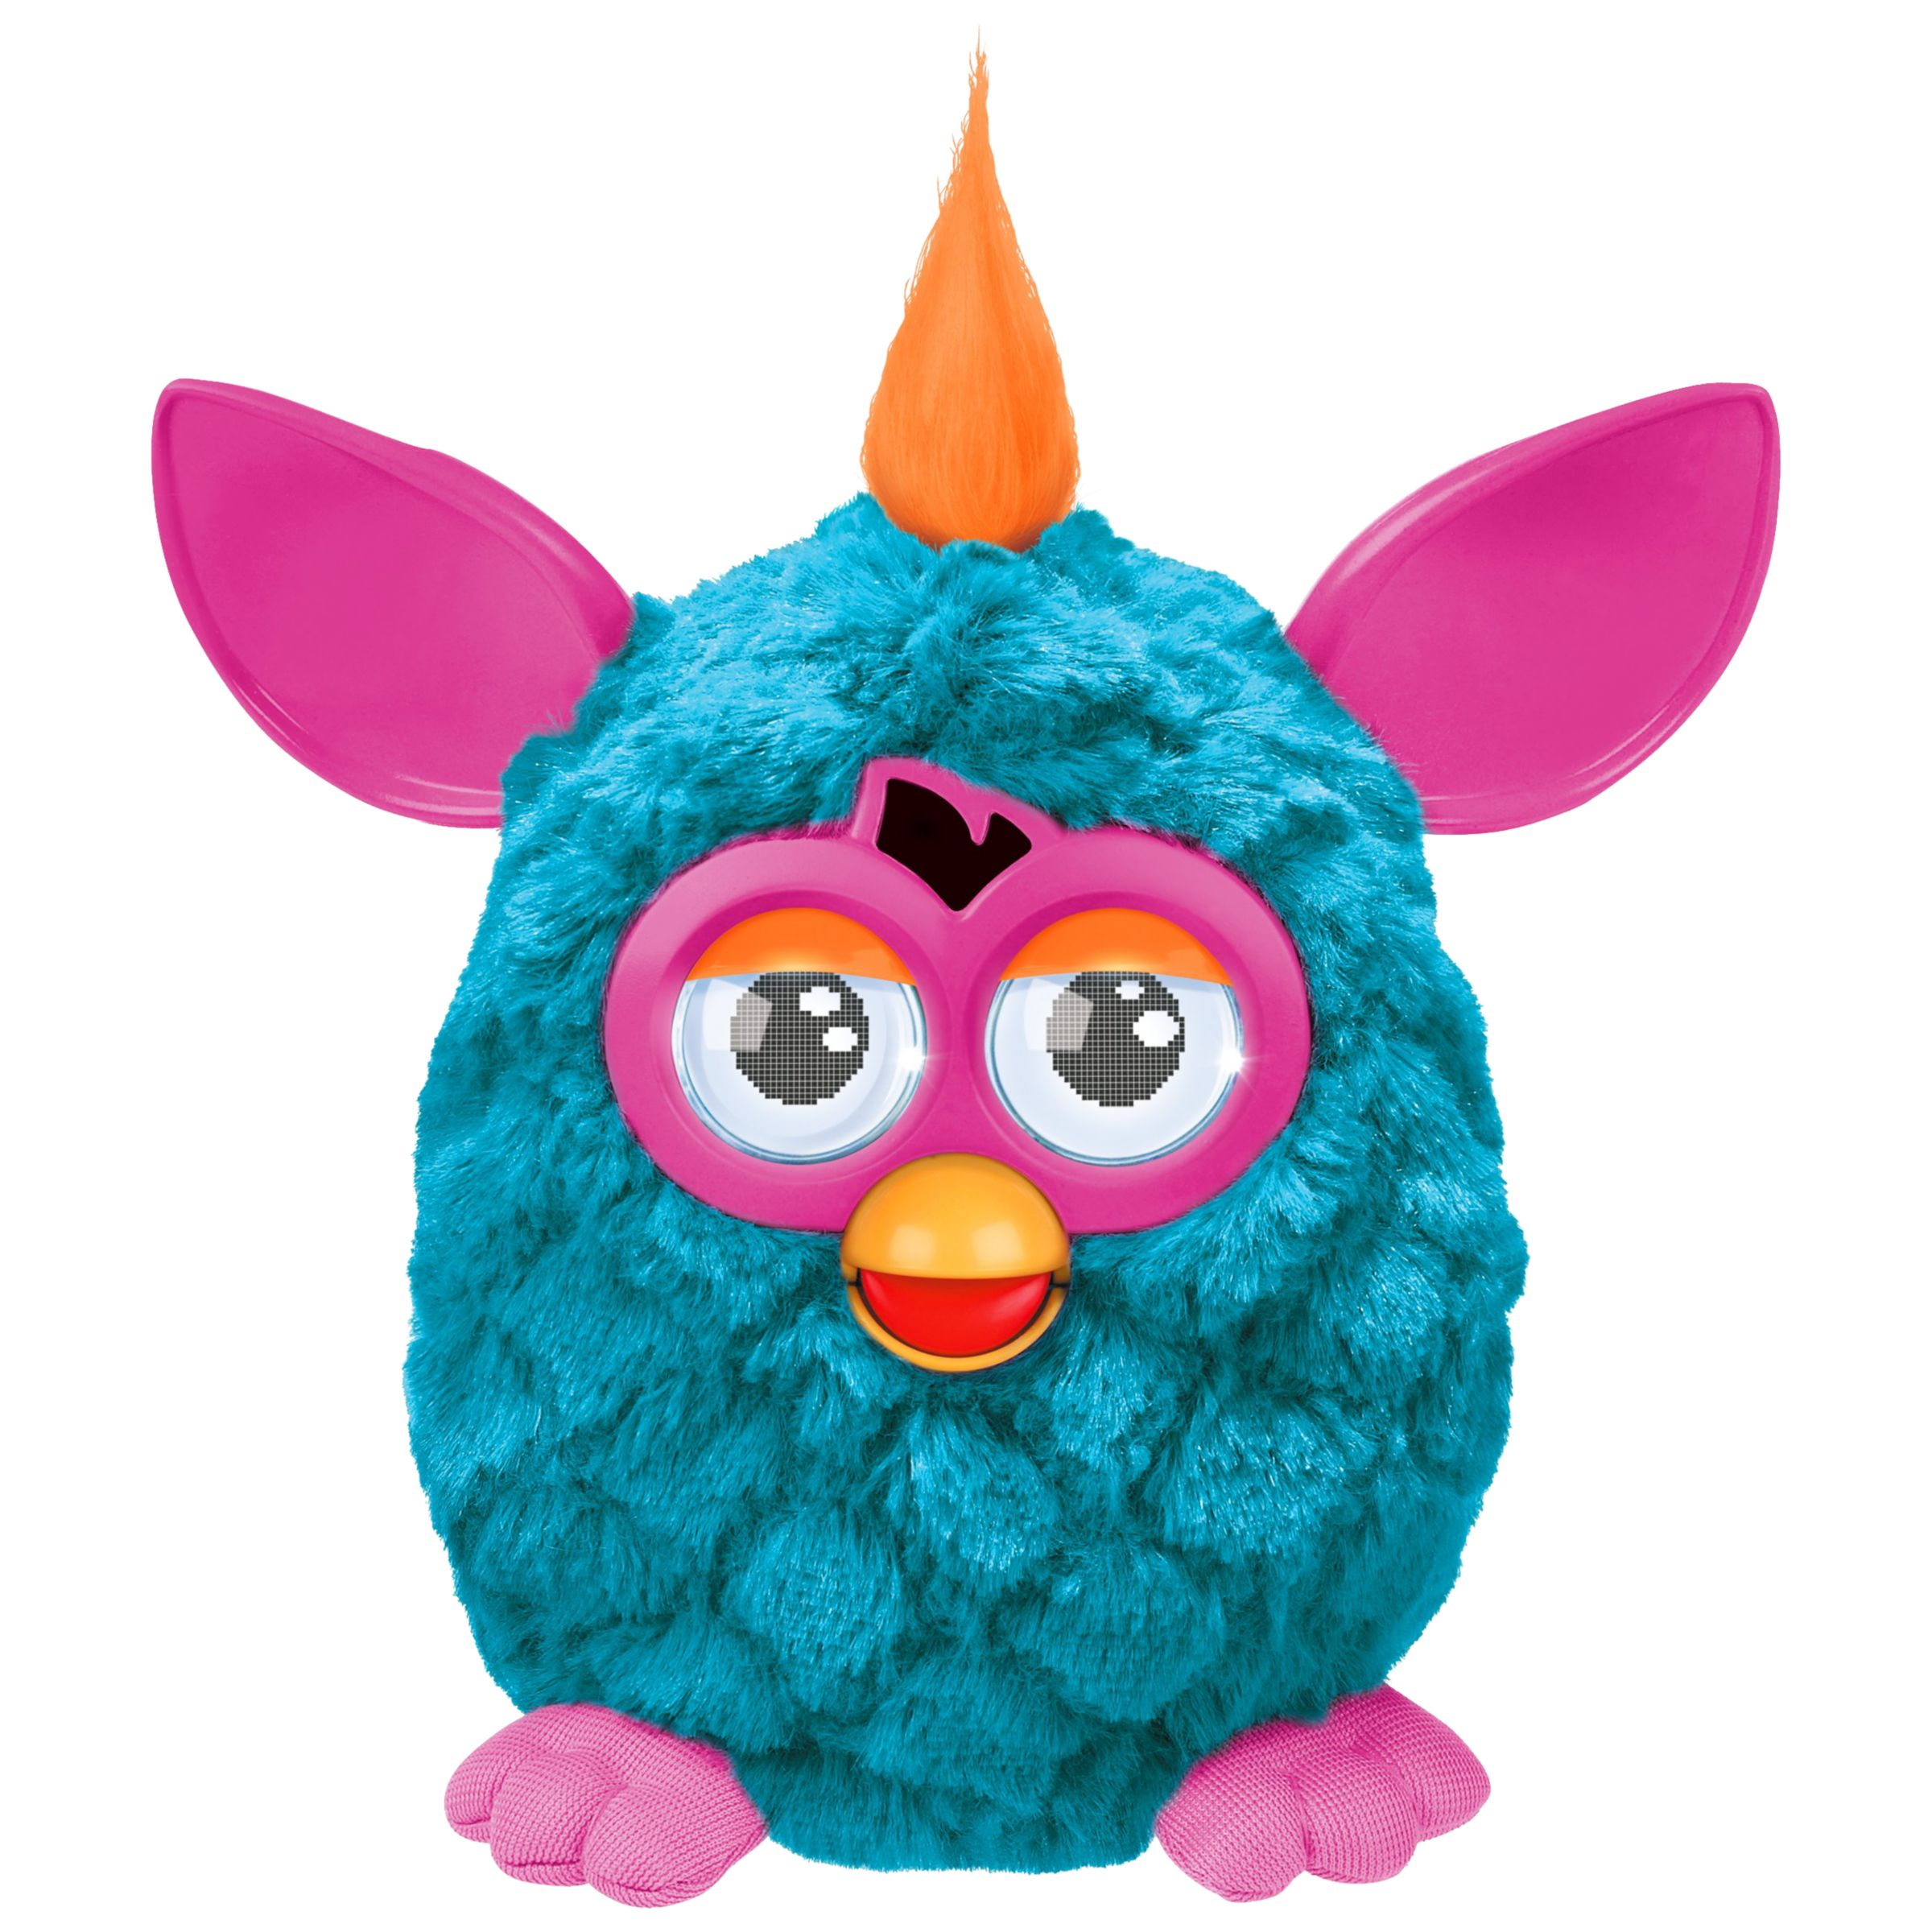 Furby: The New Generation, Teal/Pink